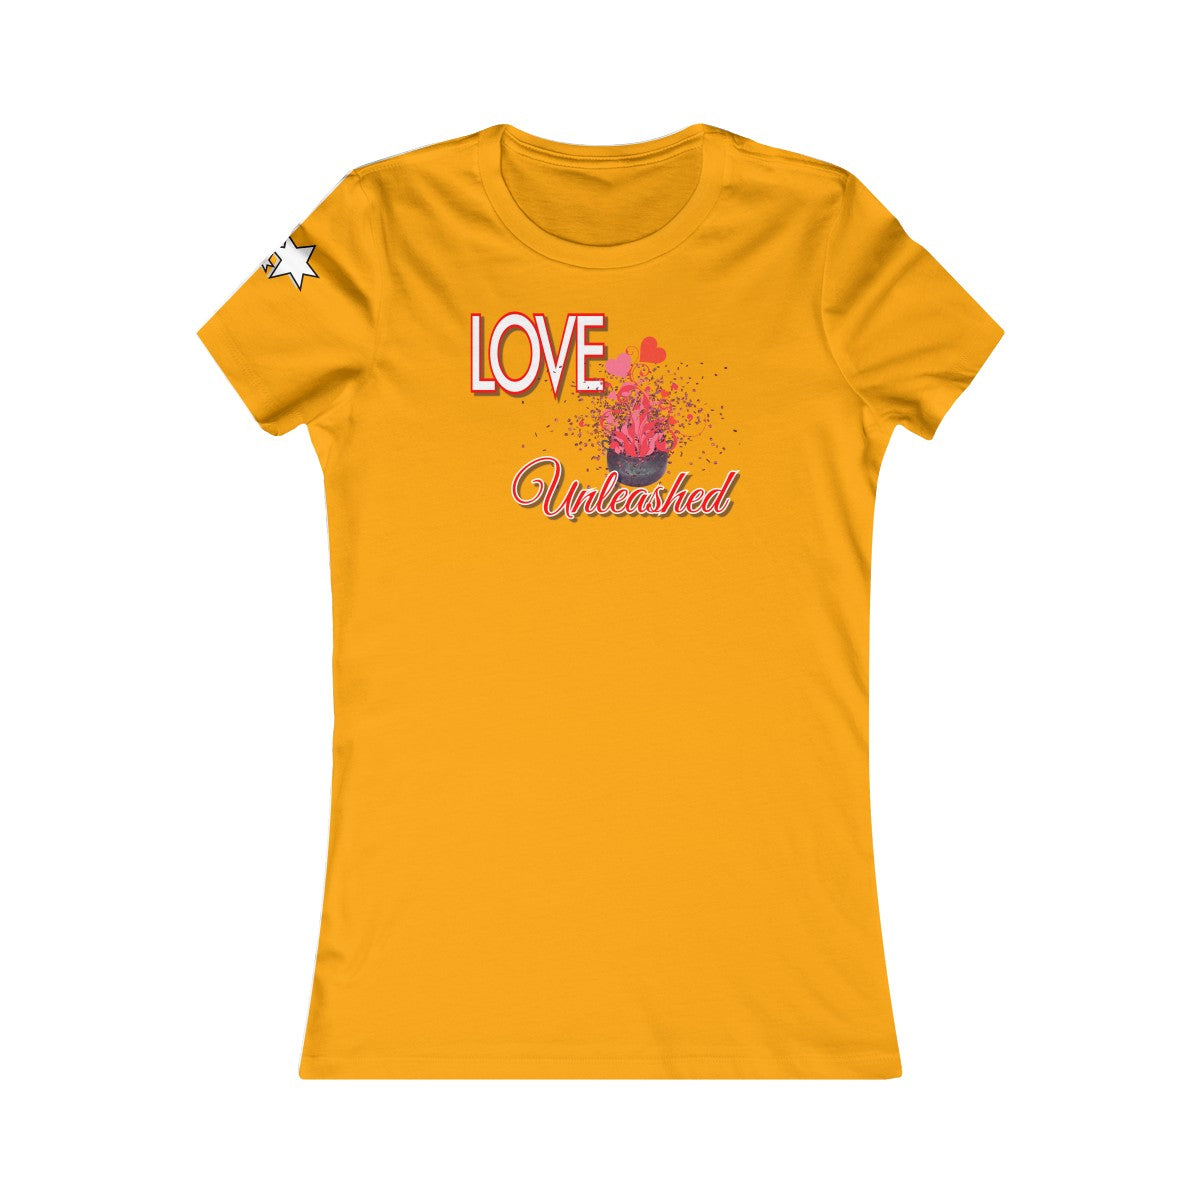 Women's Favorite Tee - Love Unleashed 1